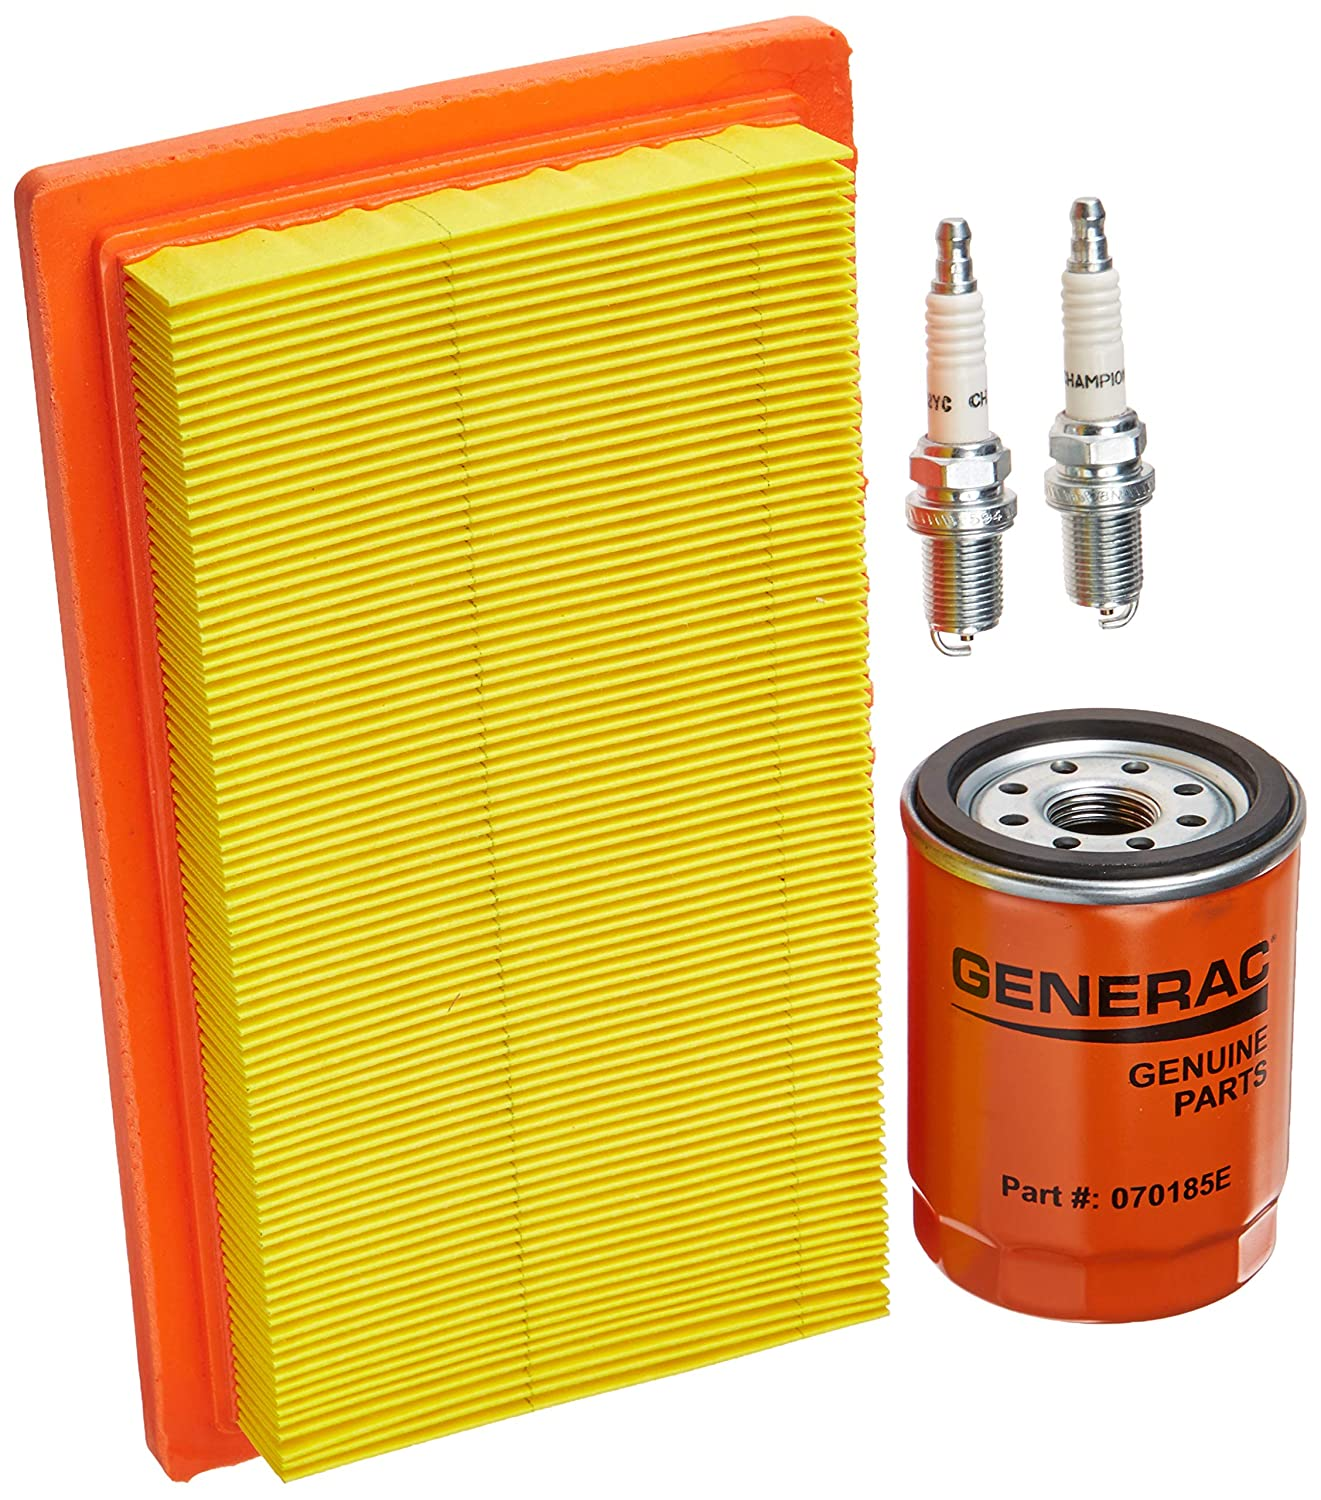 B00C2LVACW Generac 6485 Scheduled Maintenance Kit for 20kW and 22kW Standby Generators with 999cc Engine 91bYHGlO3YL